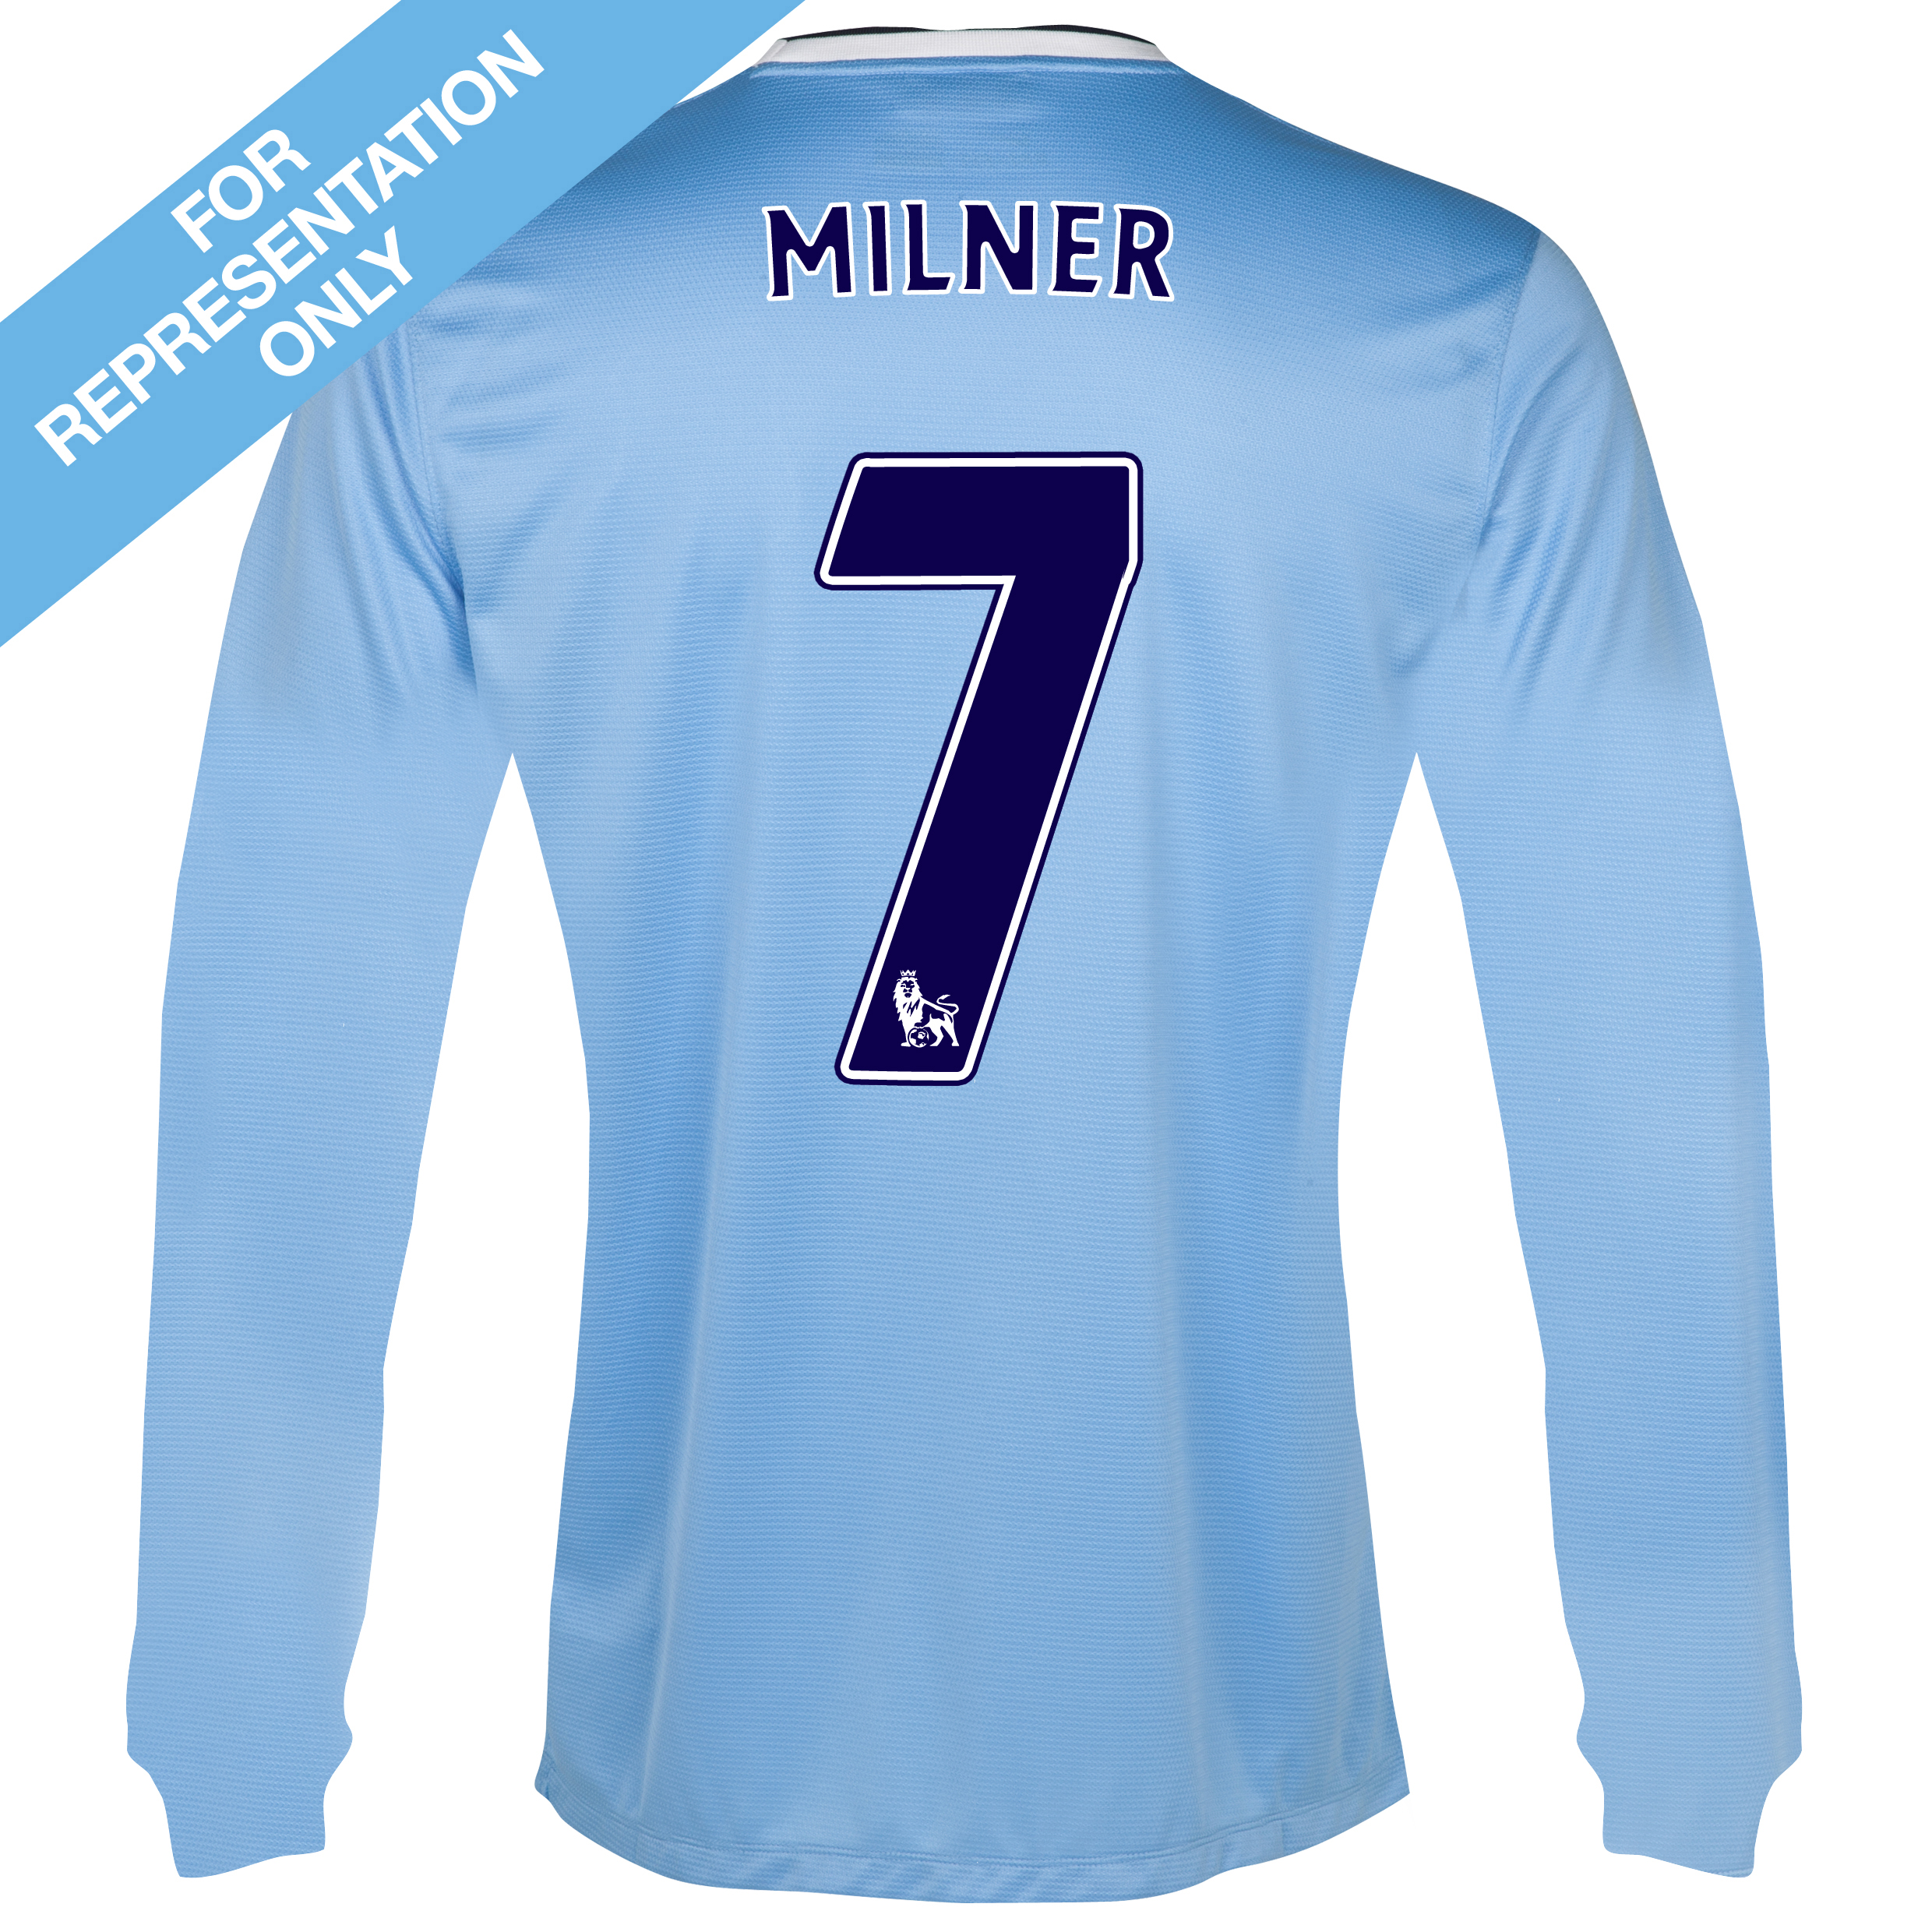 Manchester City Home Shirt 2013/14 - Long Sleeved - Junior with Milner 7 printing